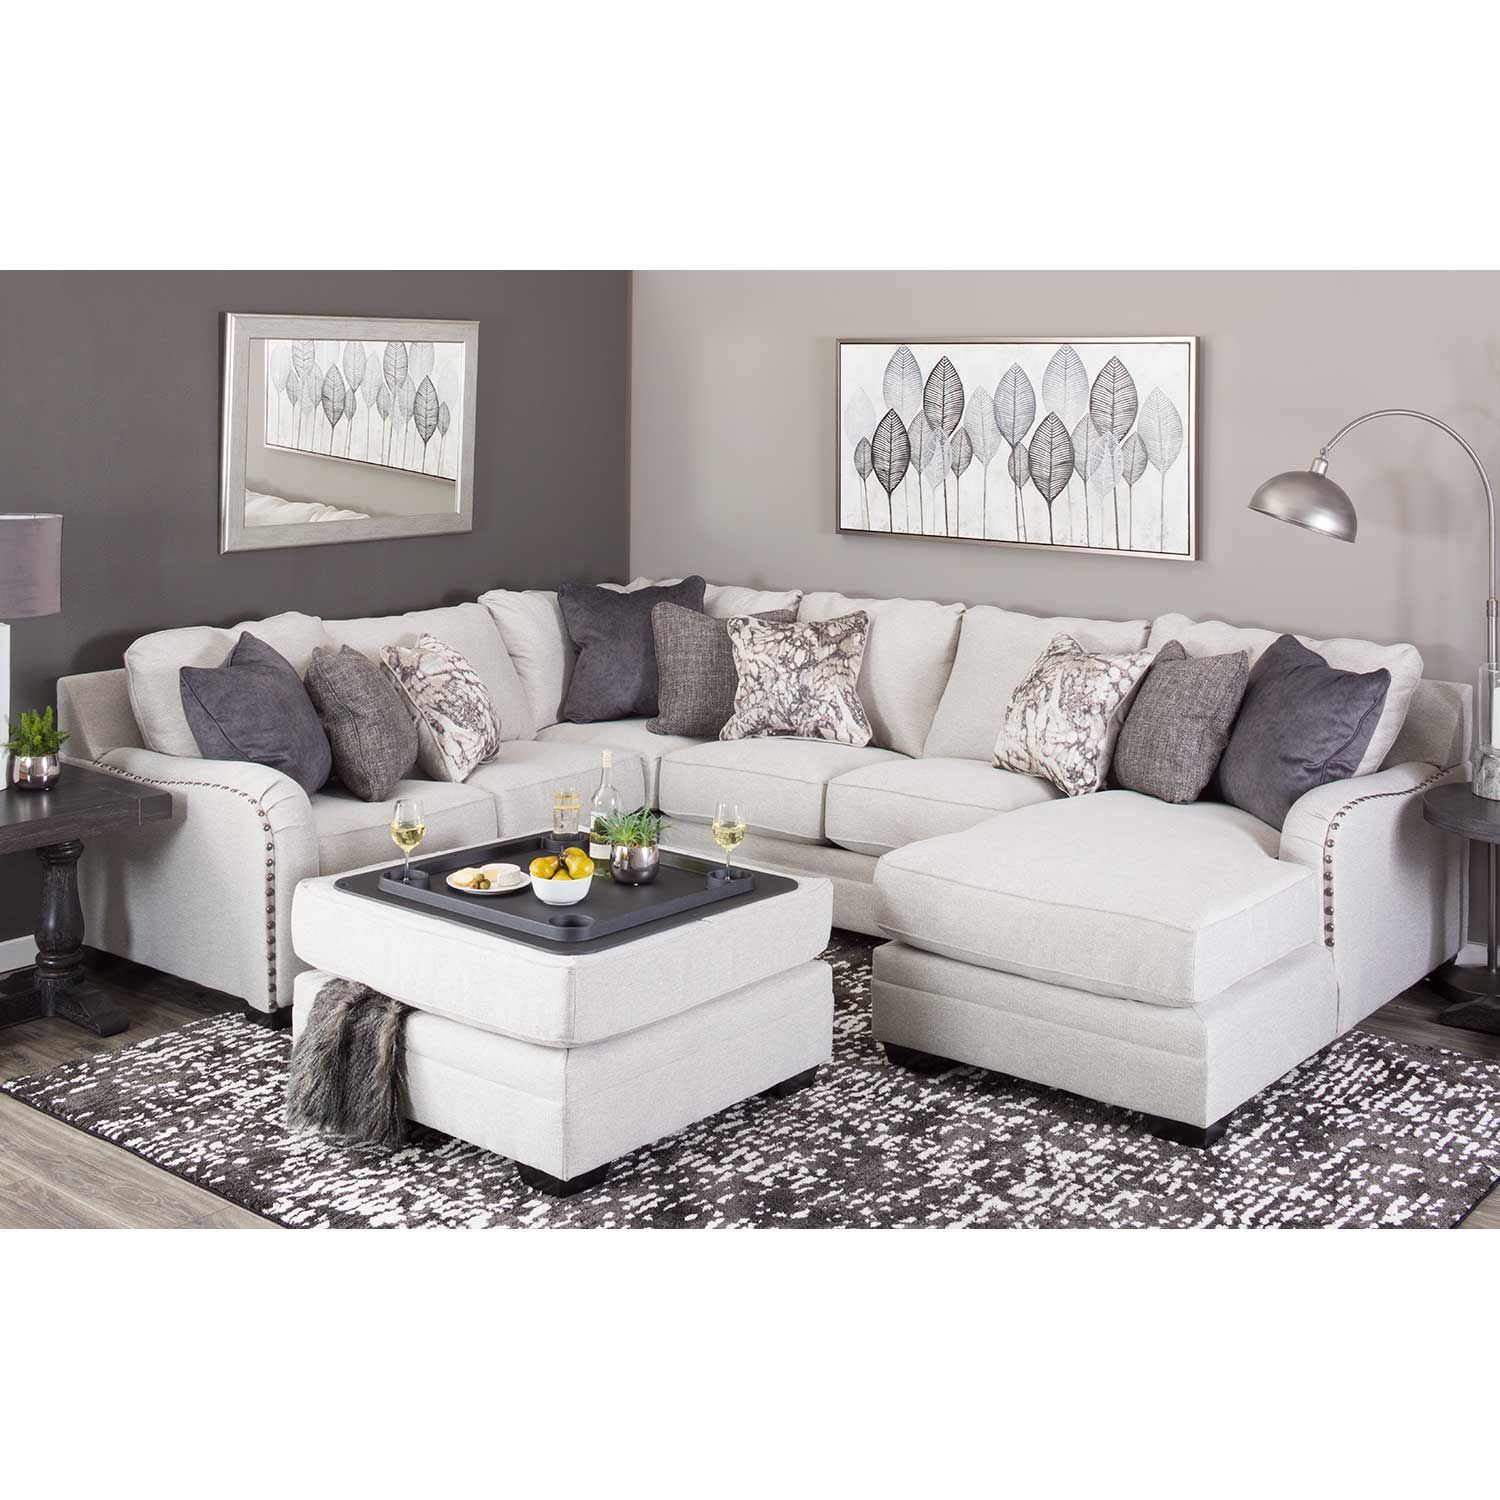 Nearest Ashley Furniture Store: Dellara 4PC Sectional With RAF Chaise